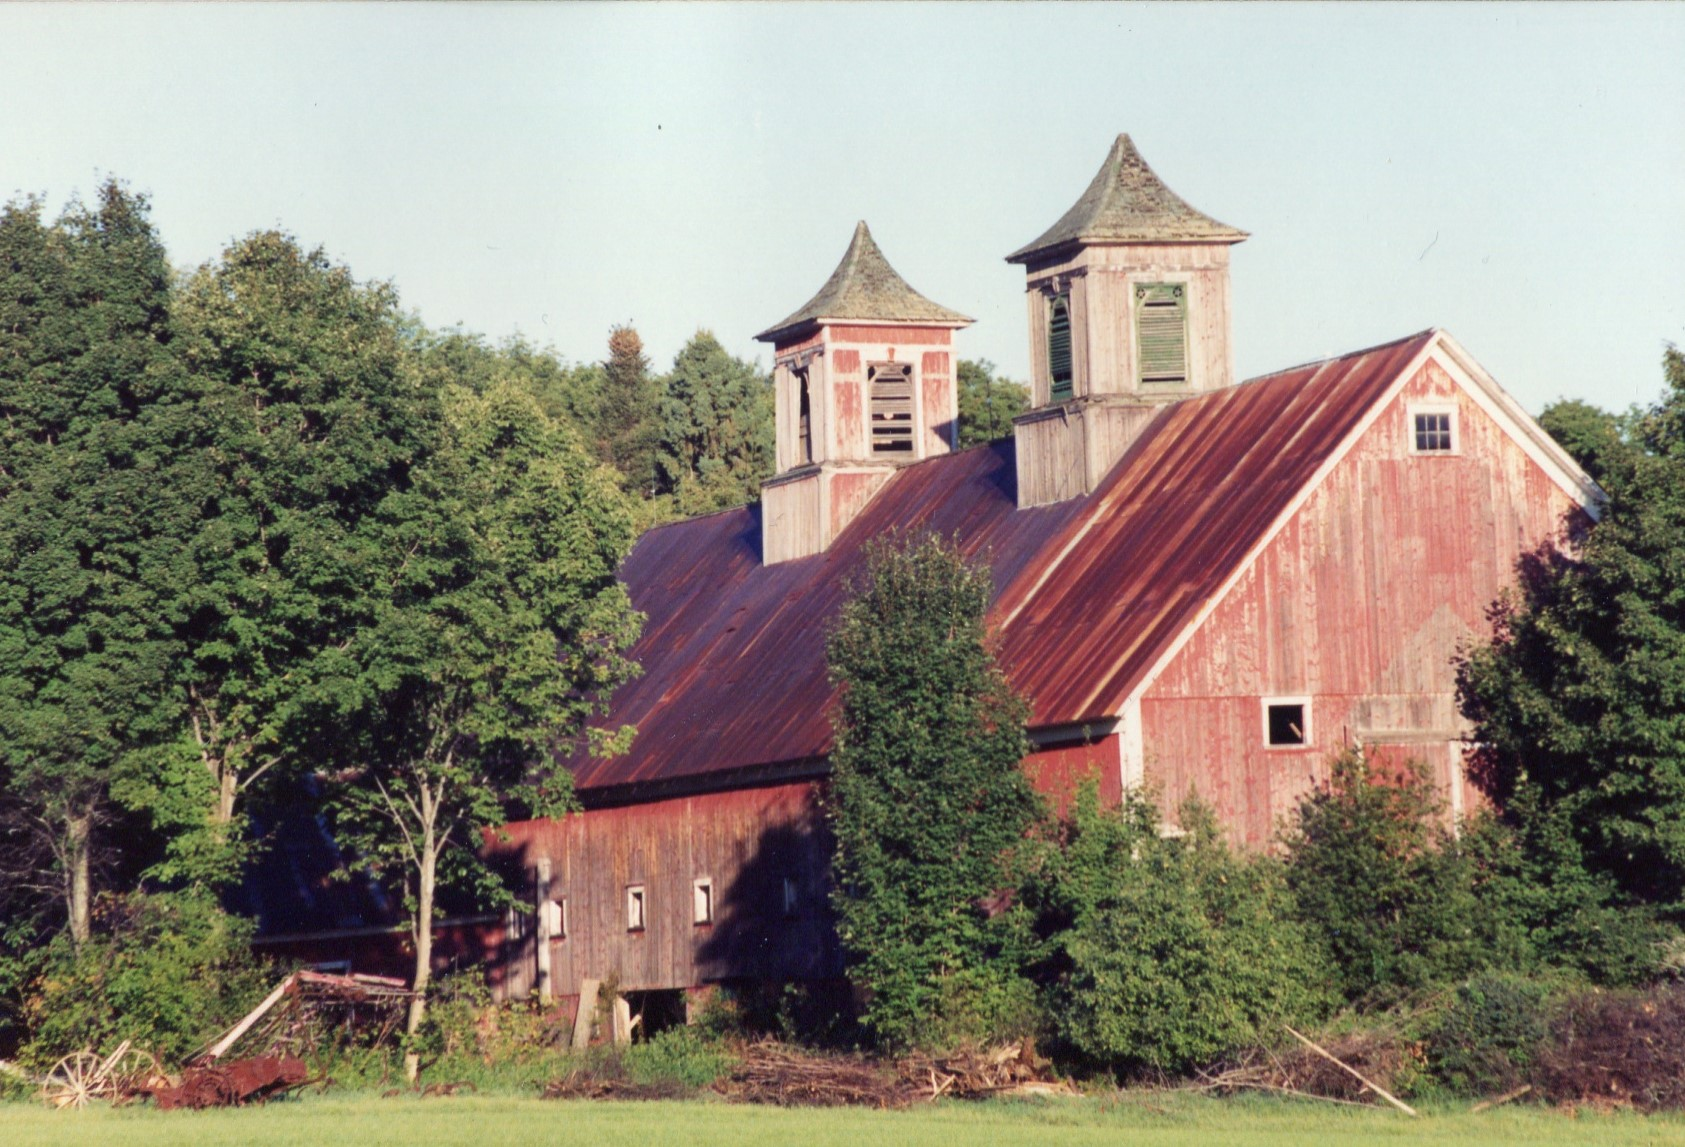 Turning Stone Farm circa 1990